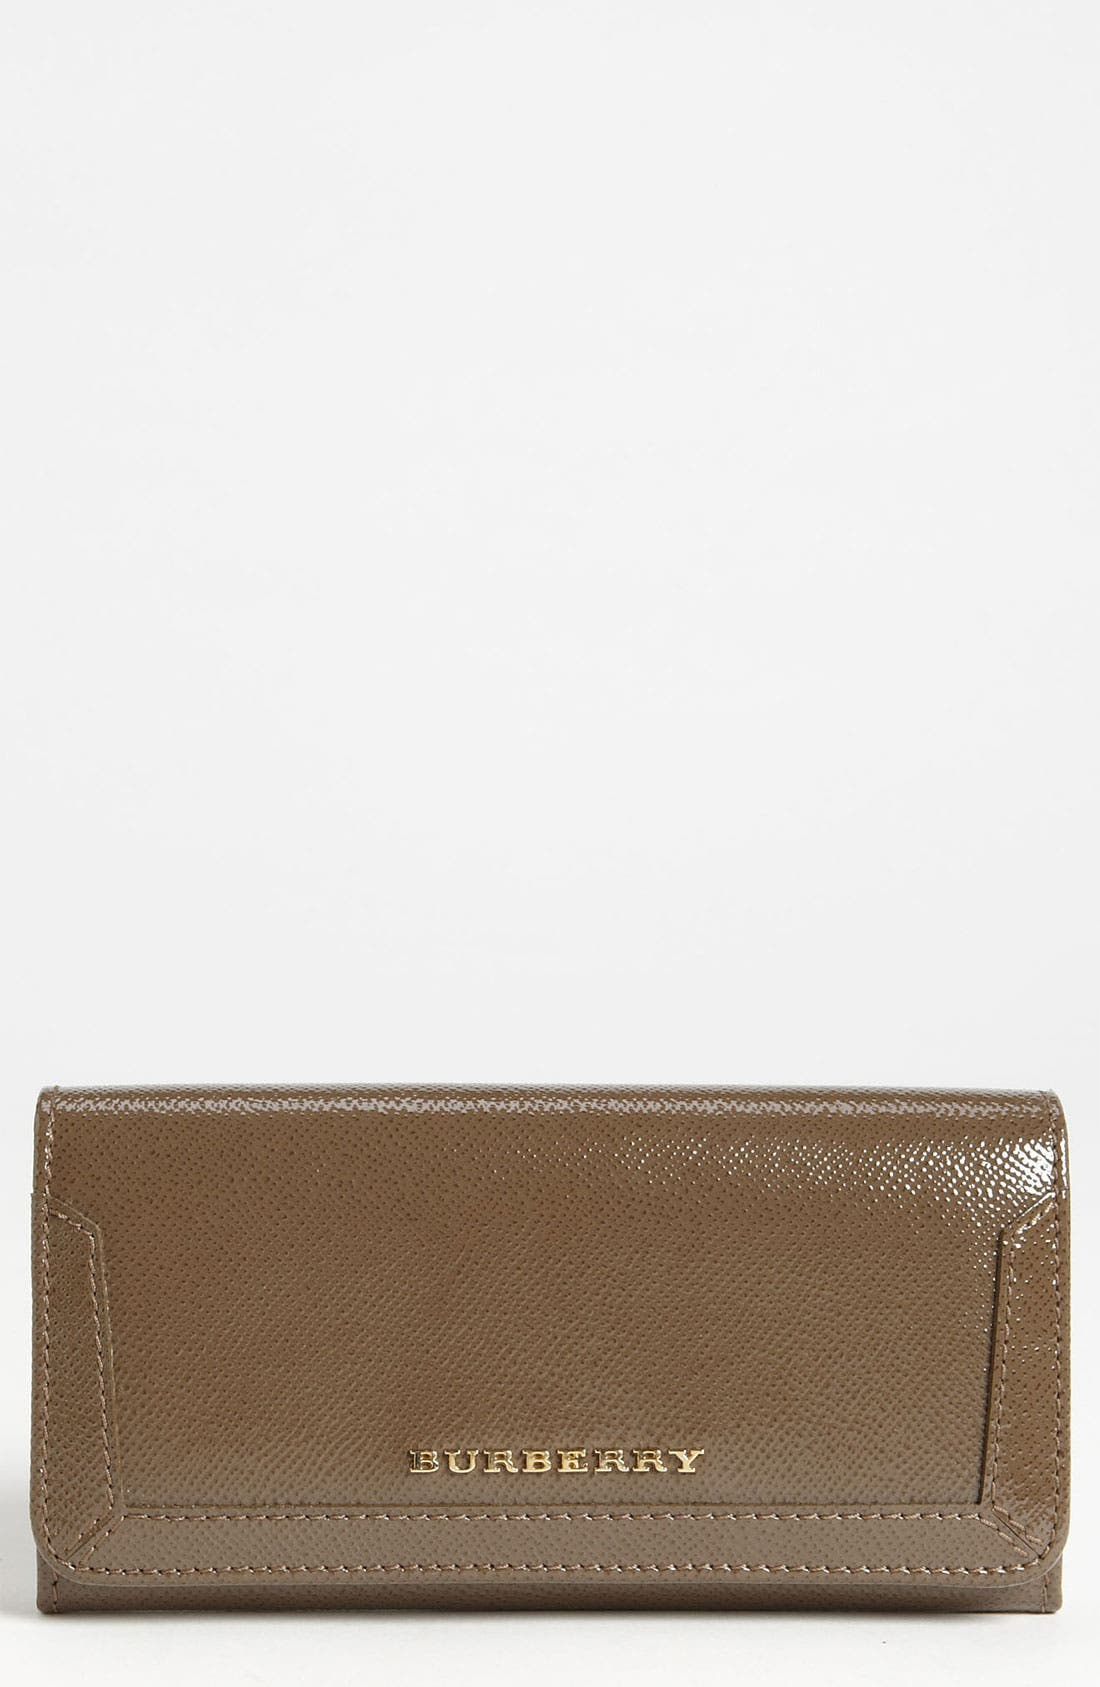 Main Image - Burberry Patent Leather Wallet